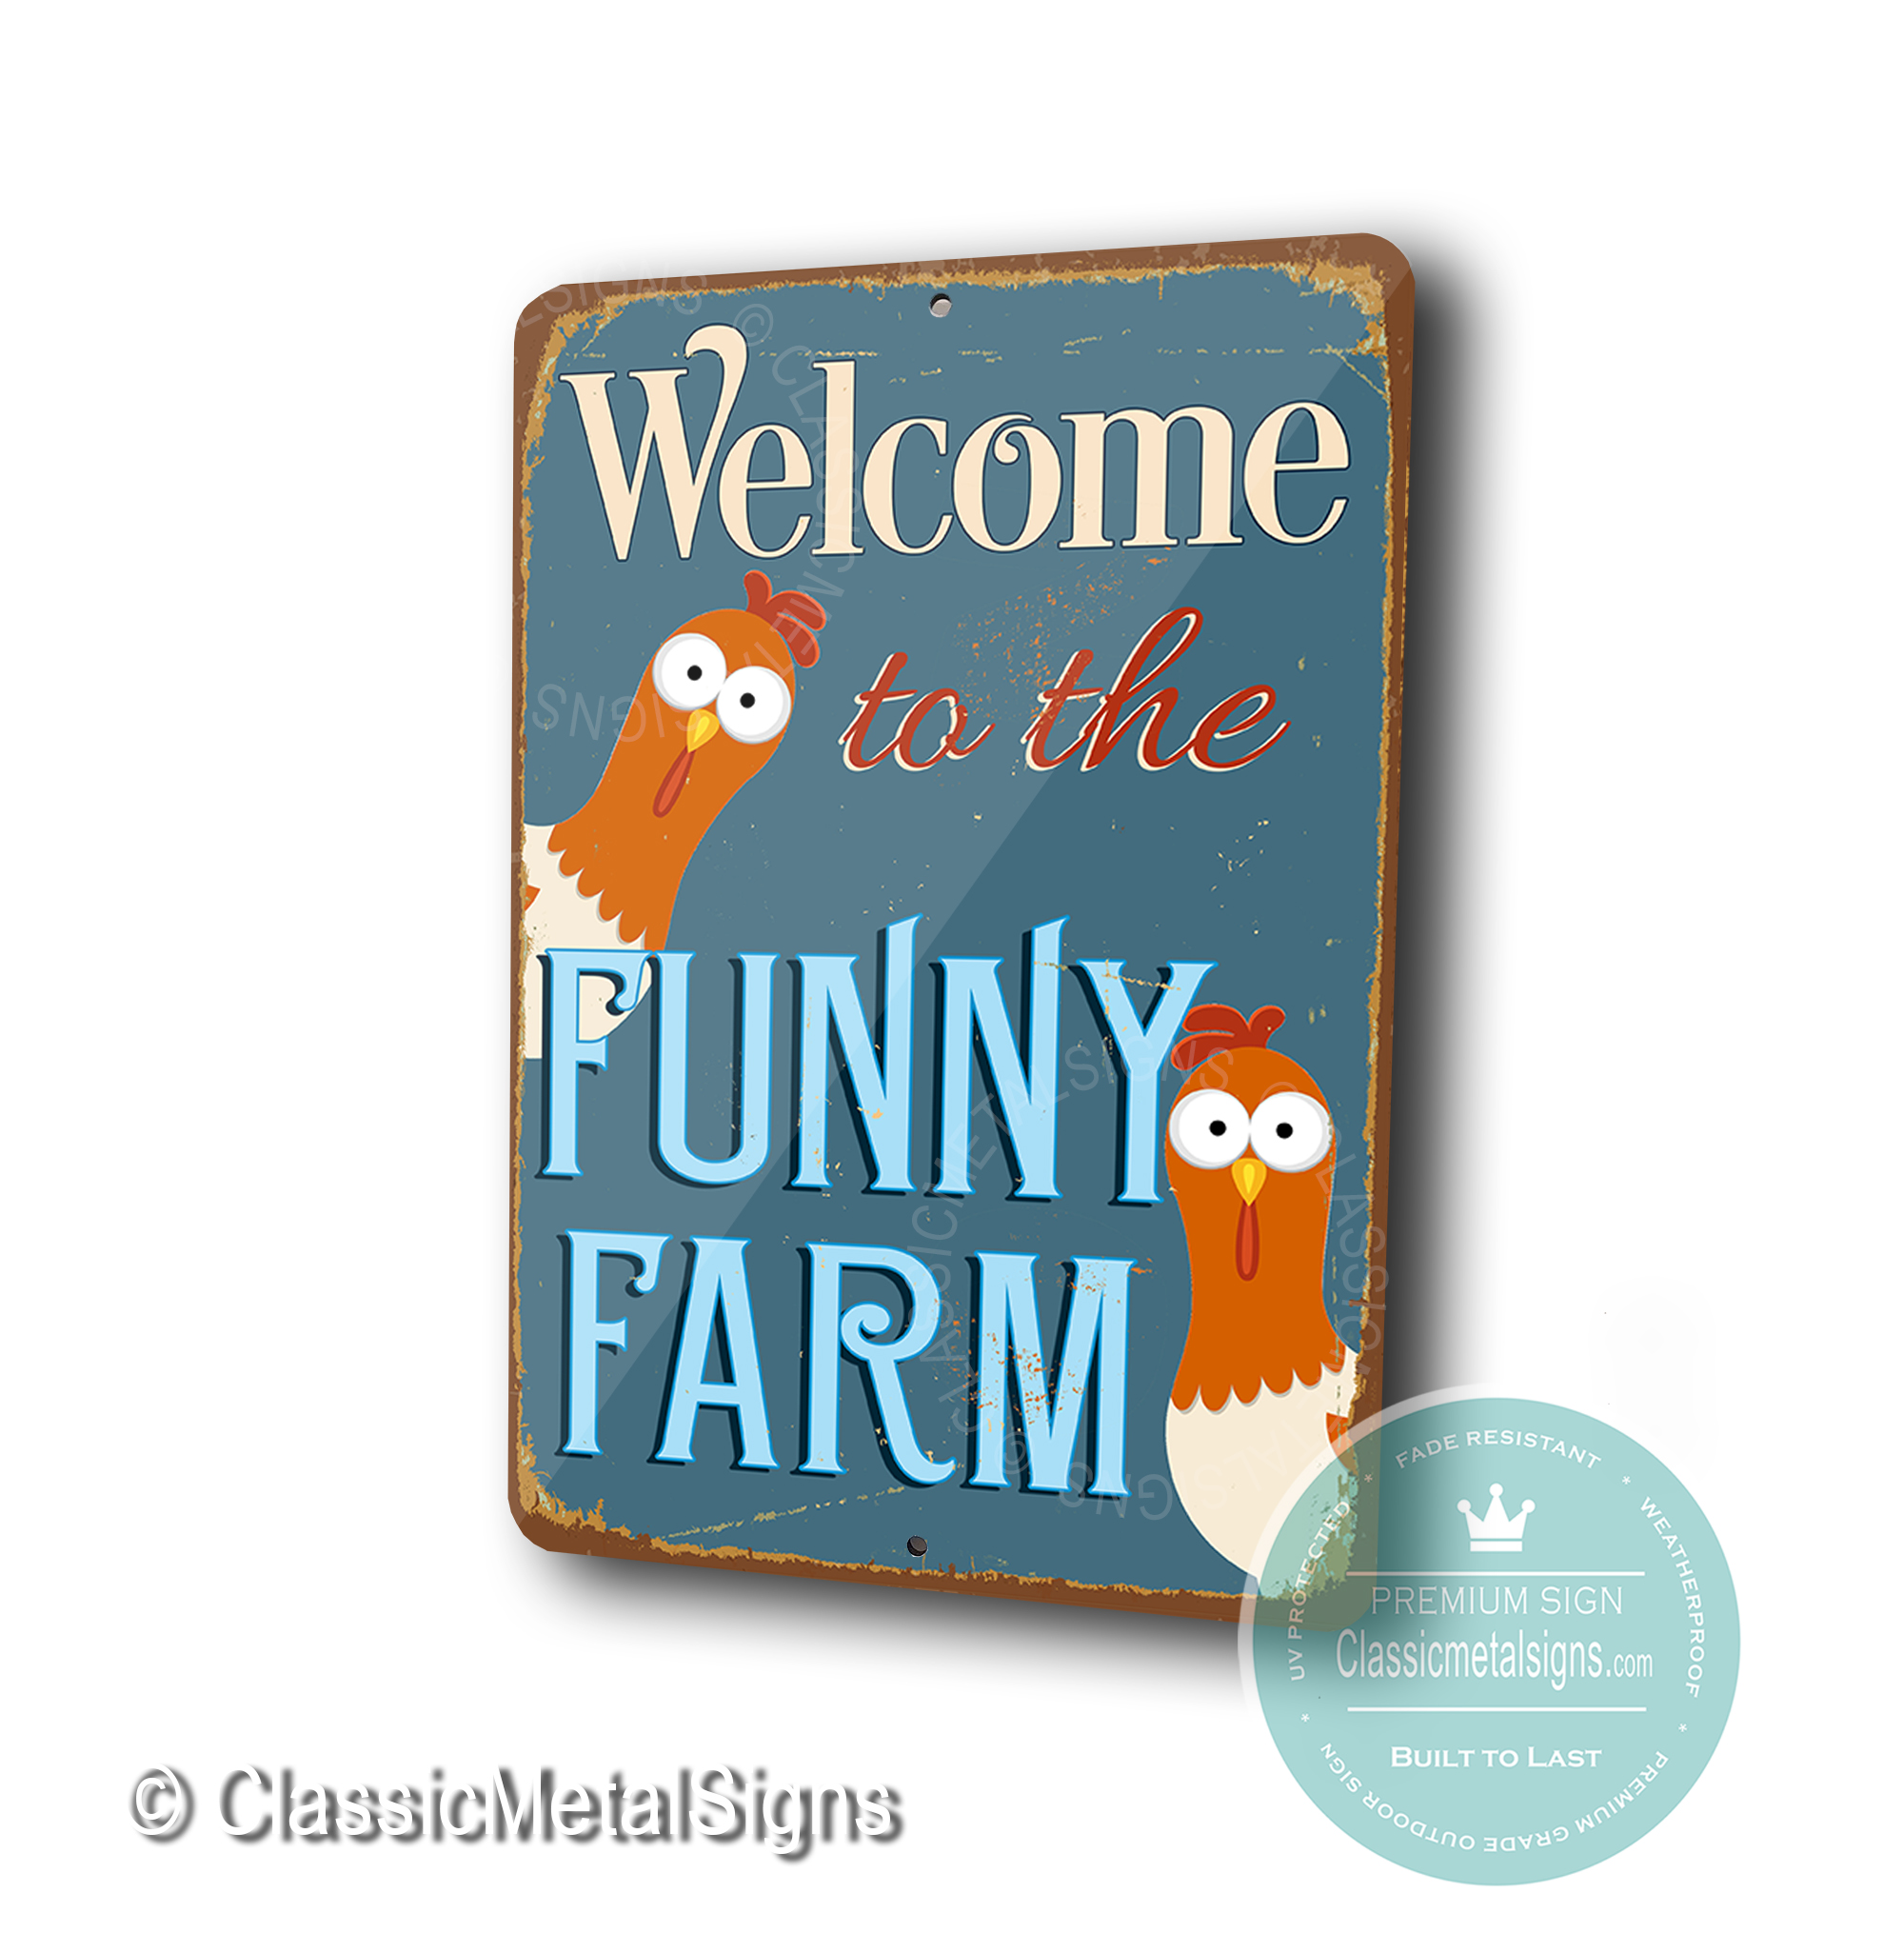 Welcome to the funny Farm Signs